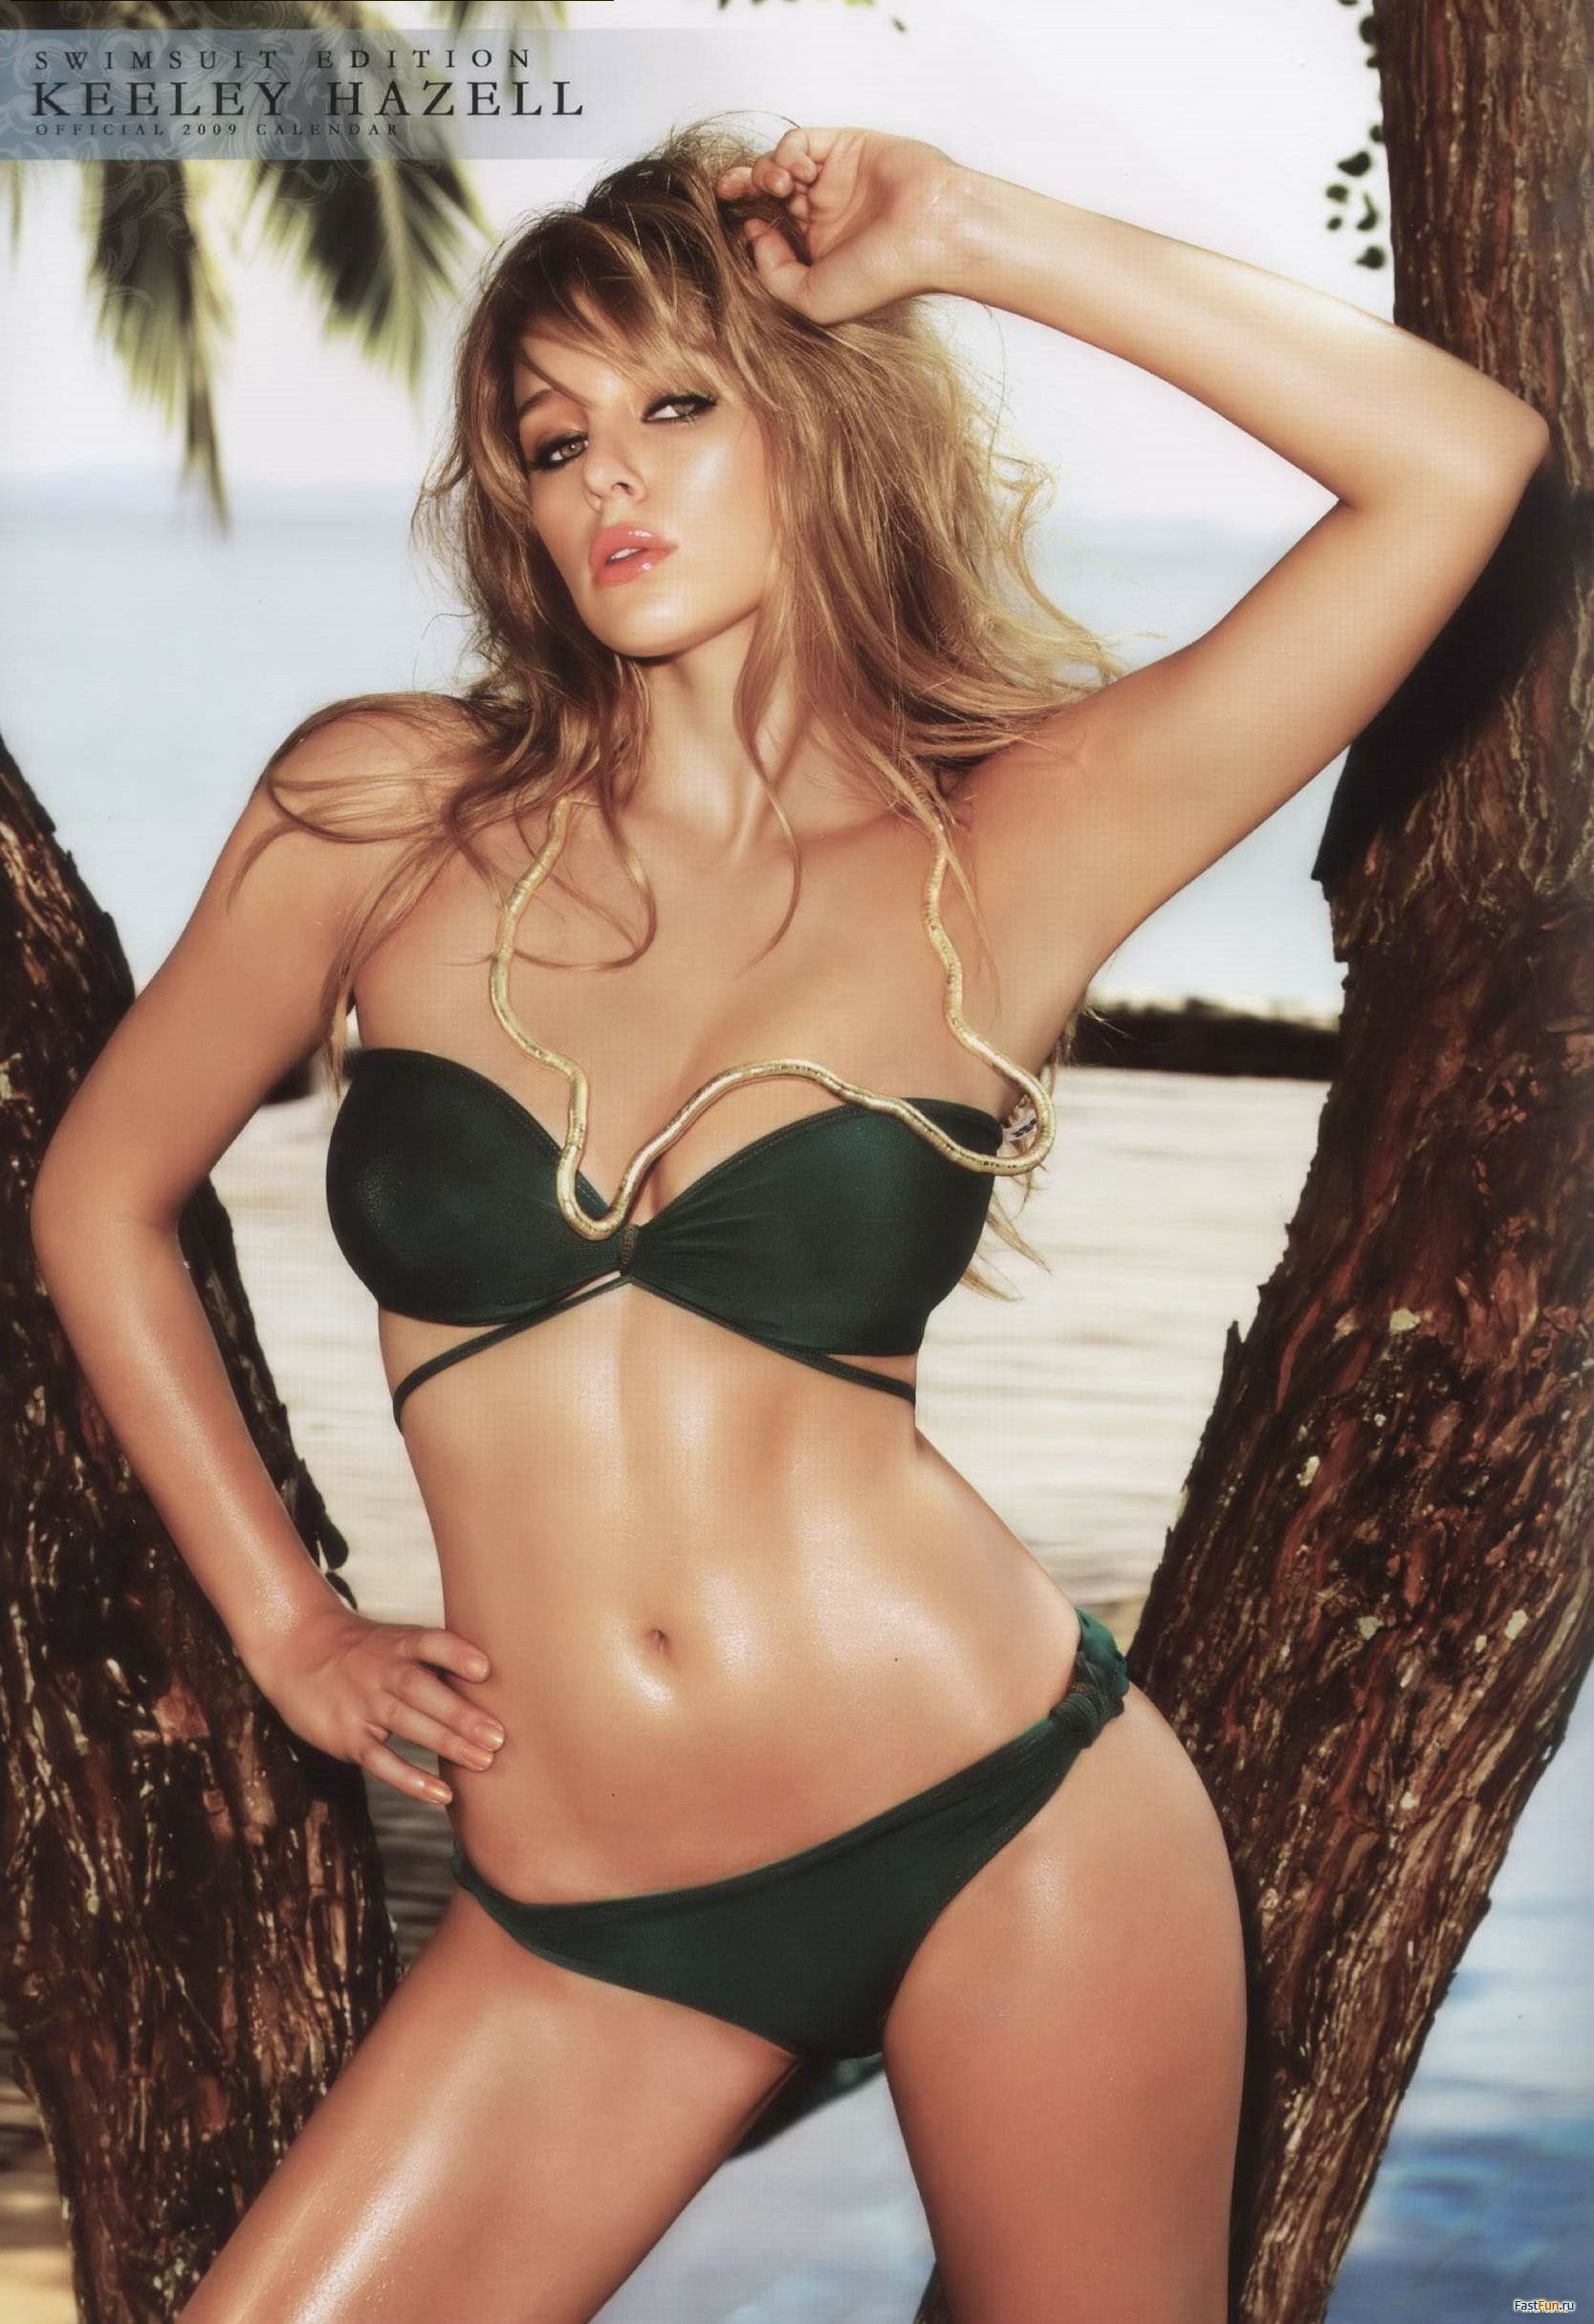 keeley hazell hot bikini